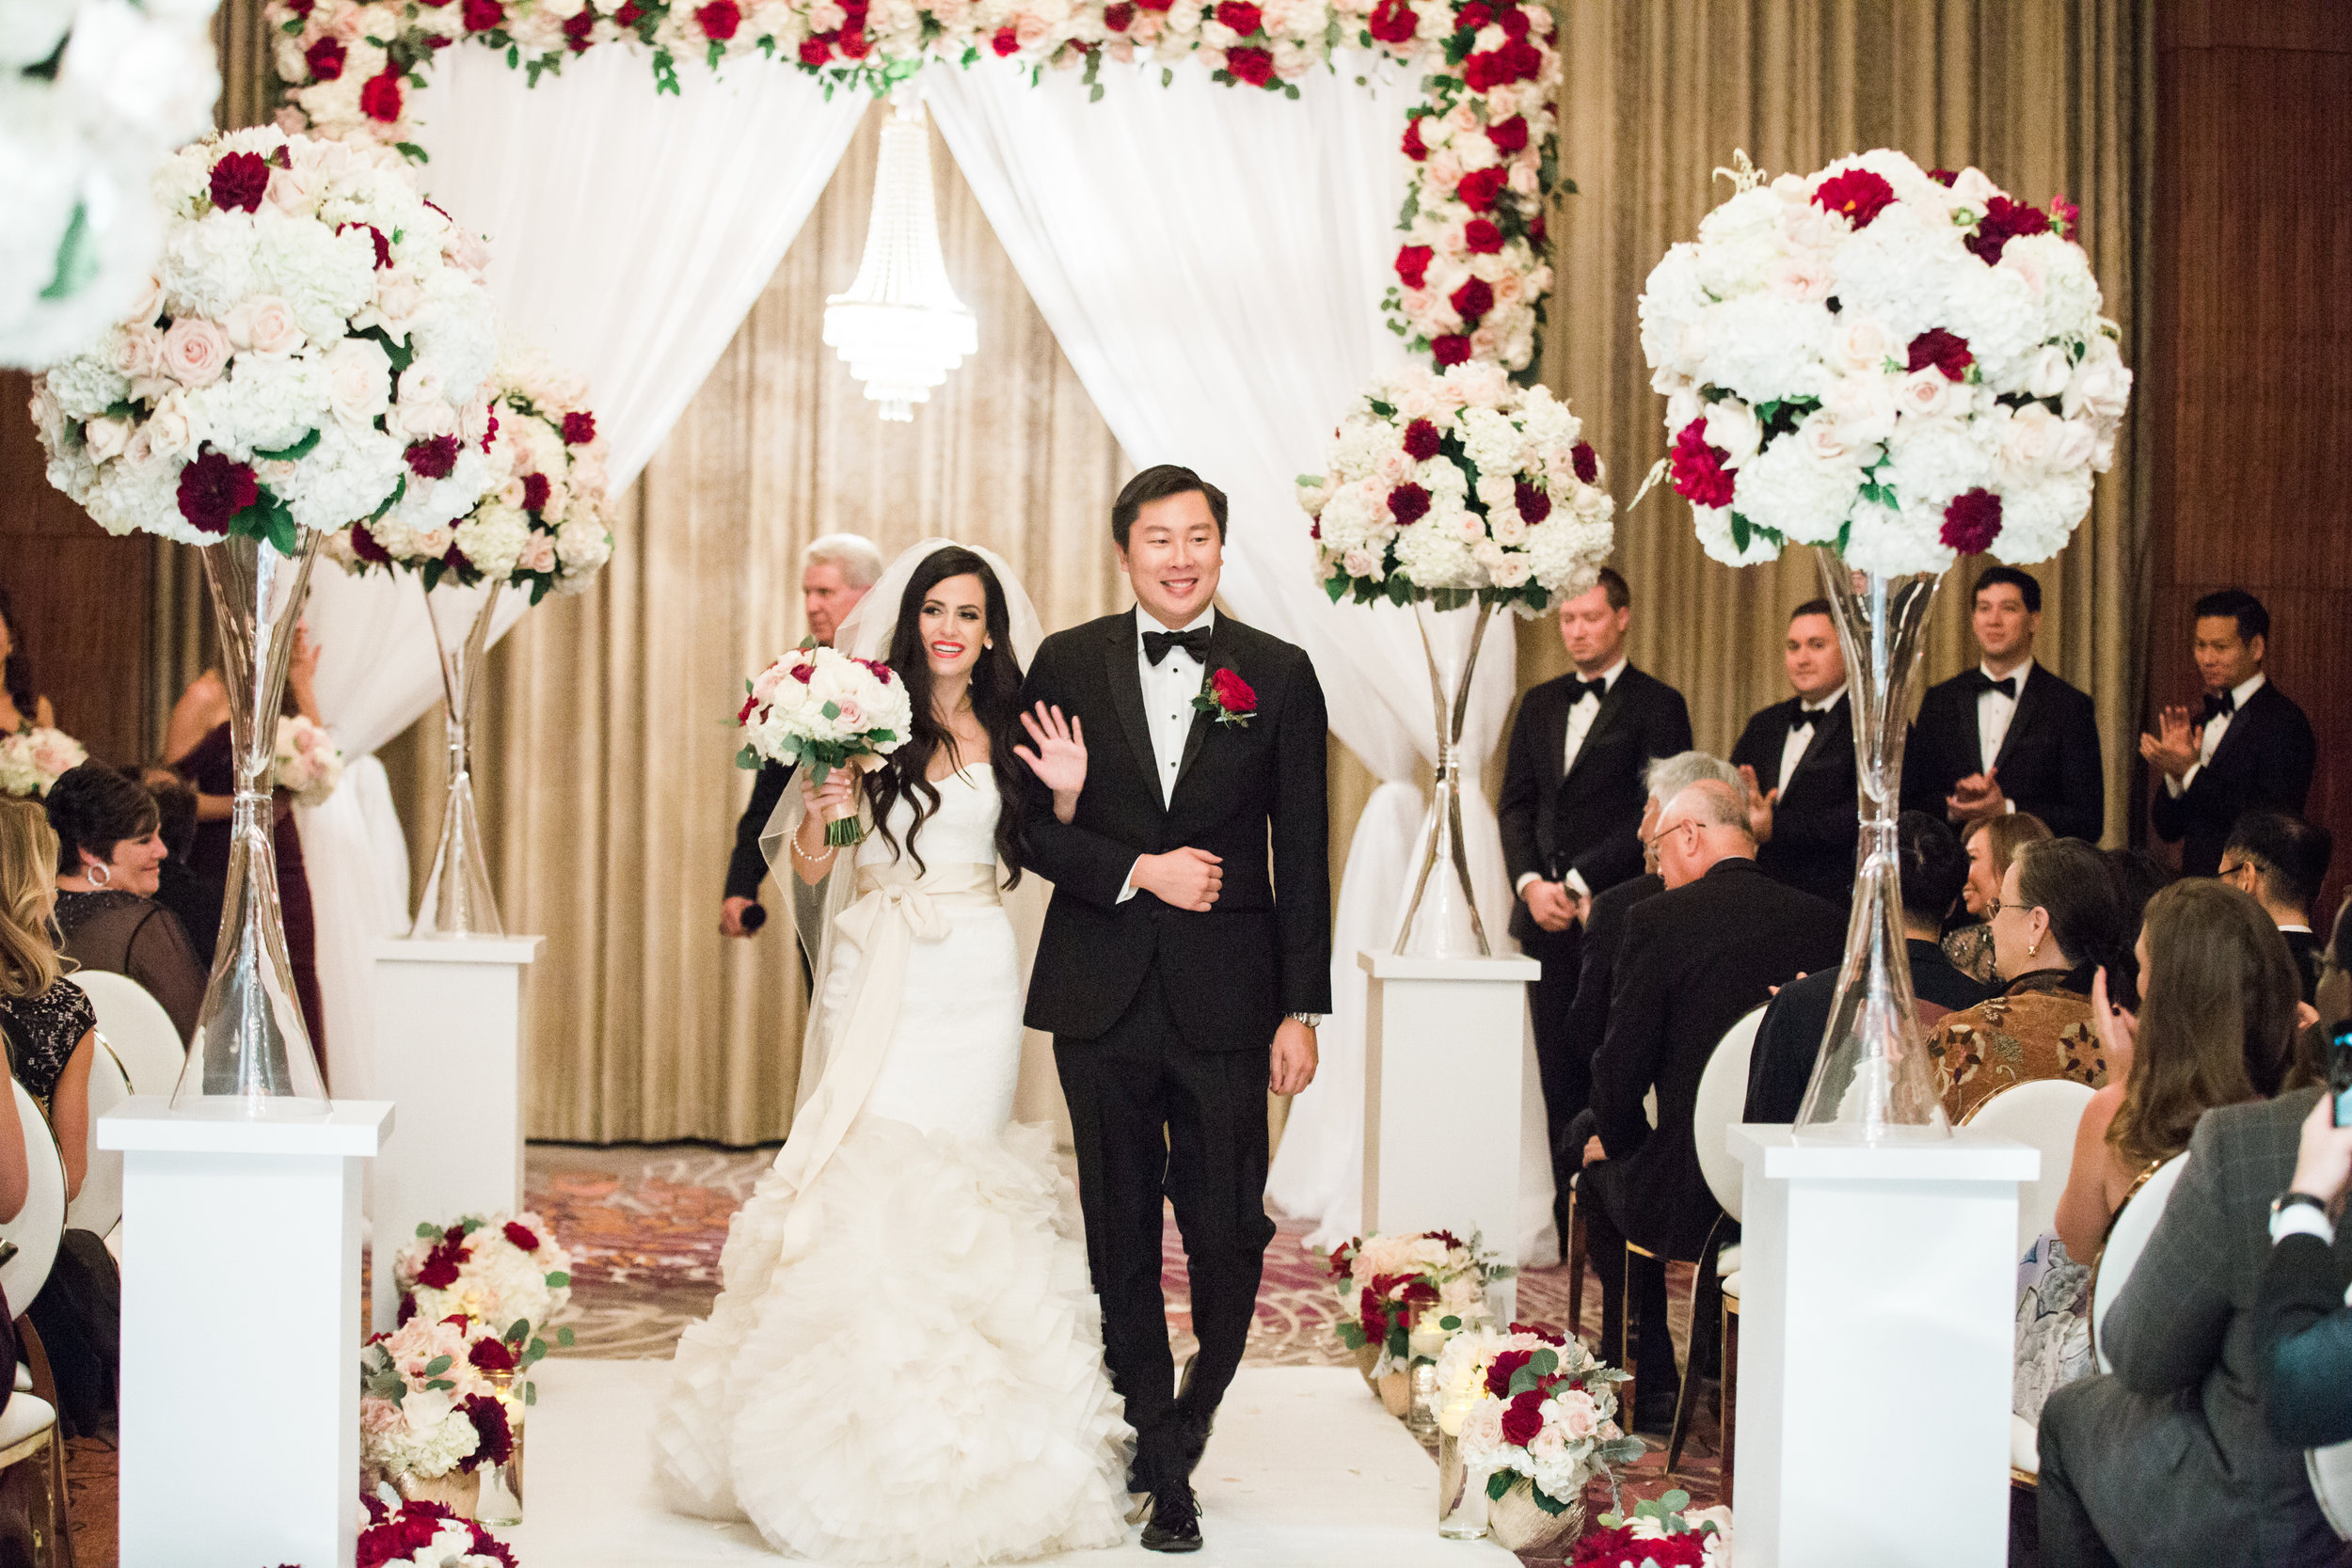 Wedding Recessional.Luxury wedding at the Mandarin Oriental with a color scheme of white, blush, and pops of wine red produced by Las Vegas Wedding Planner Andrea Eppolito with photos by Stephen Salazar Photography.